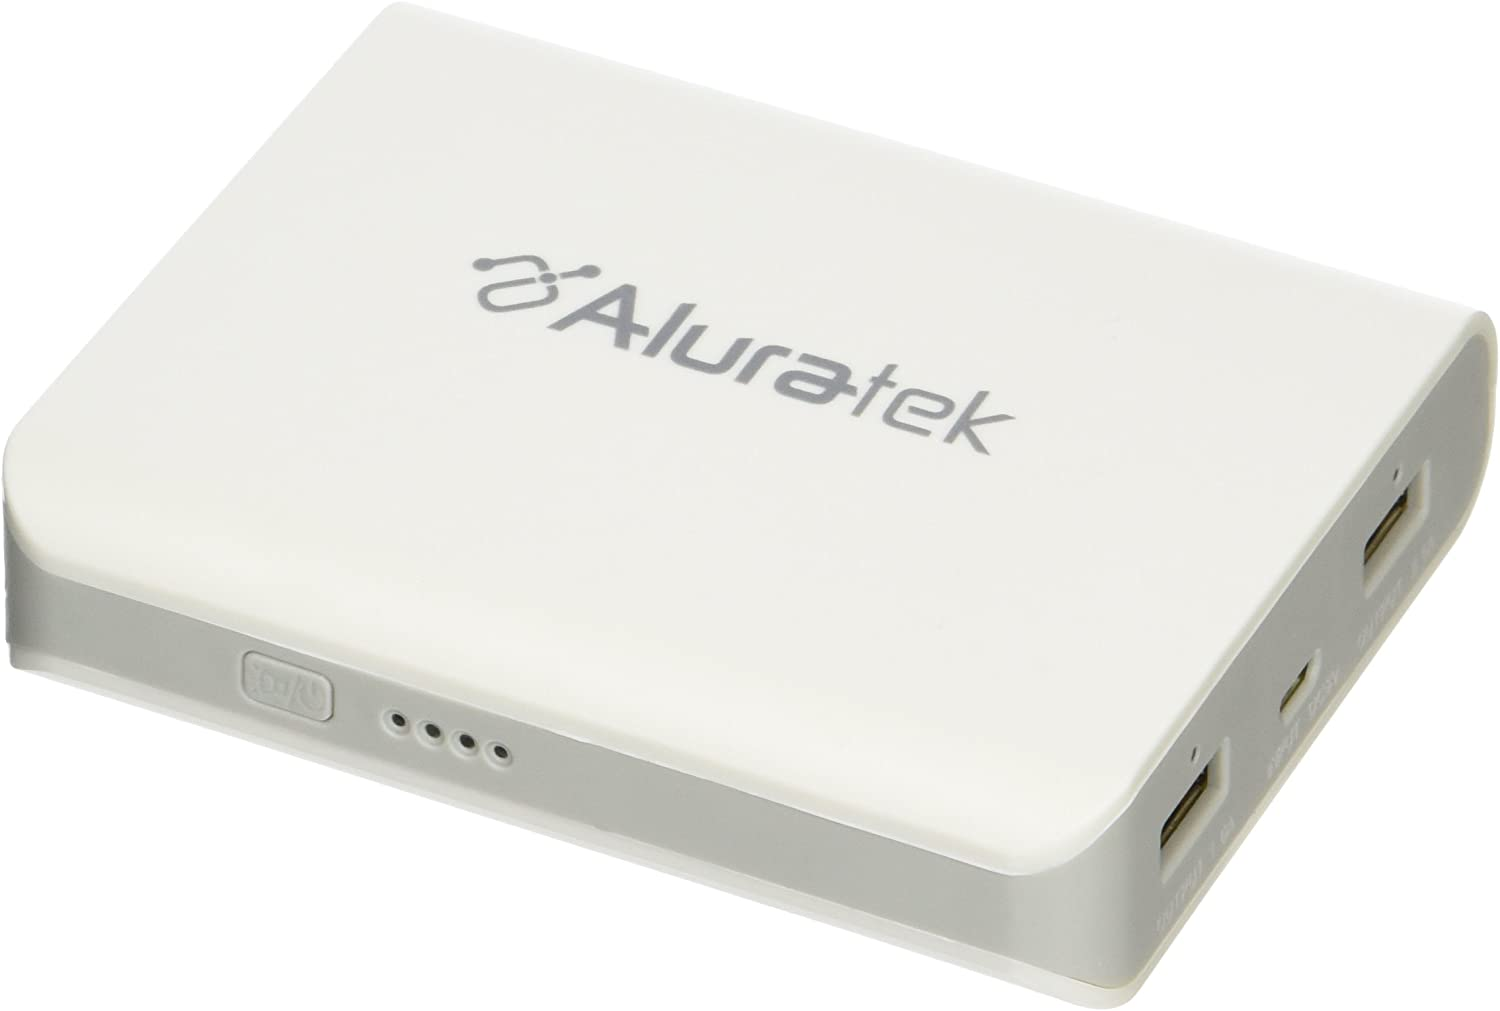 Aluratek APB02F Dual USB 8,000 mAh External Battery Pack and Charger for iPod, iPhone, iPad, eReaders